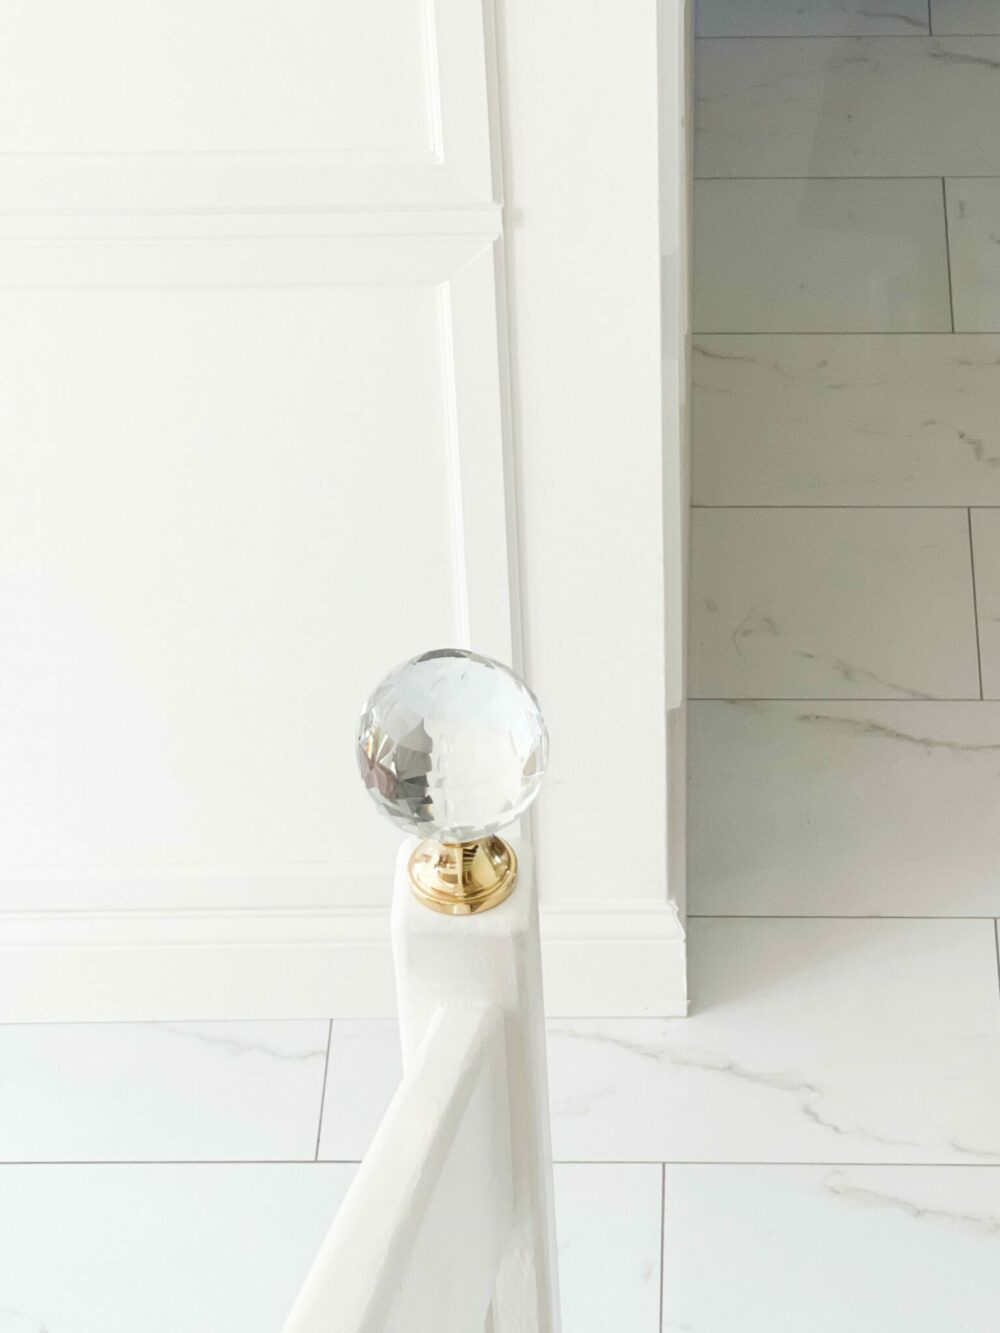 Large crystal finial on brass base, mounted on white staircase railing newel post.